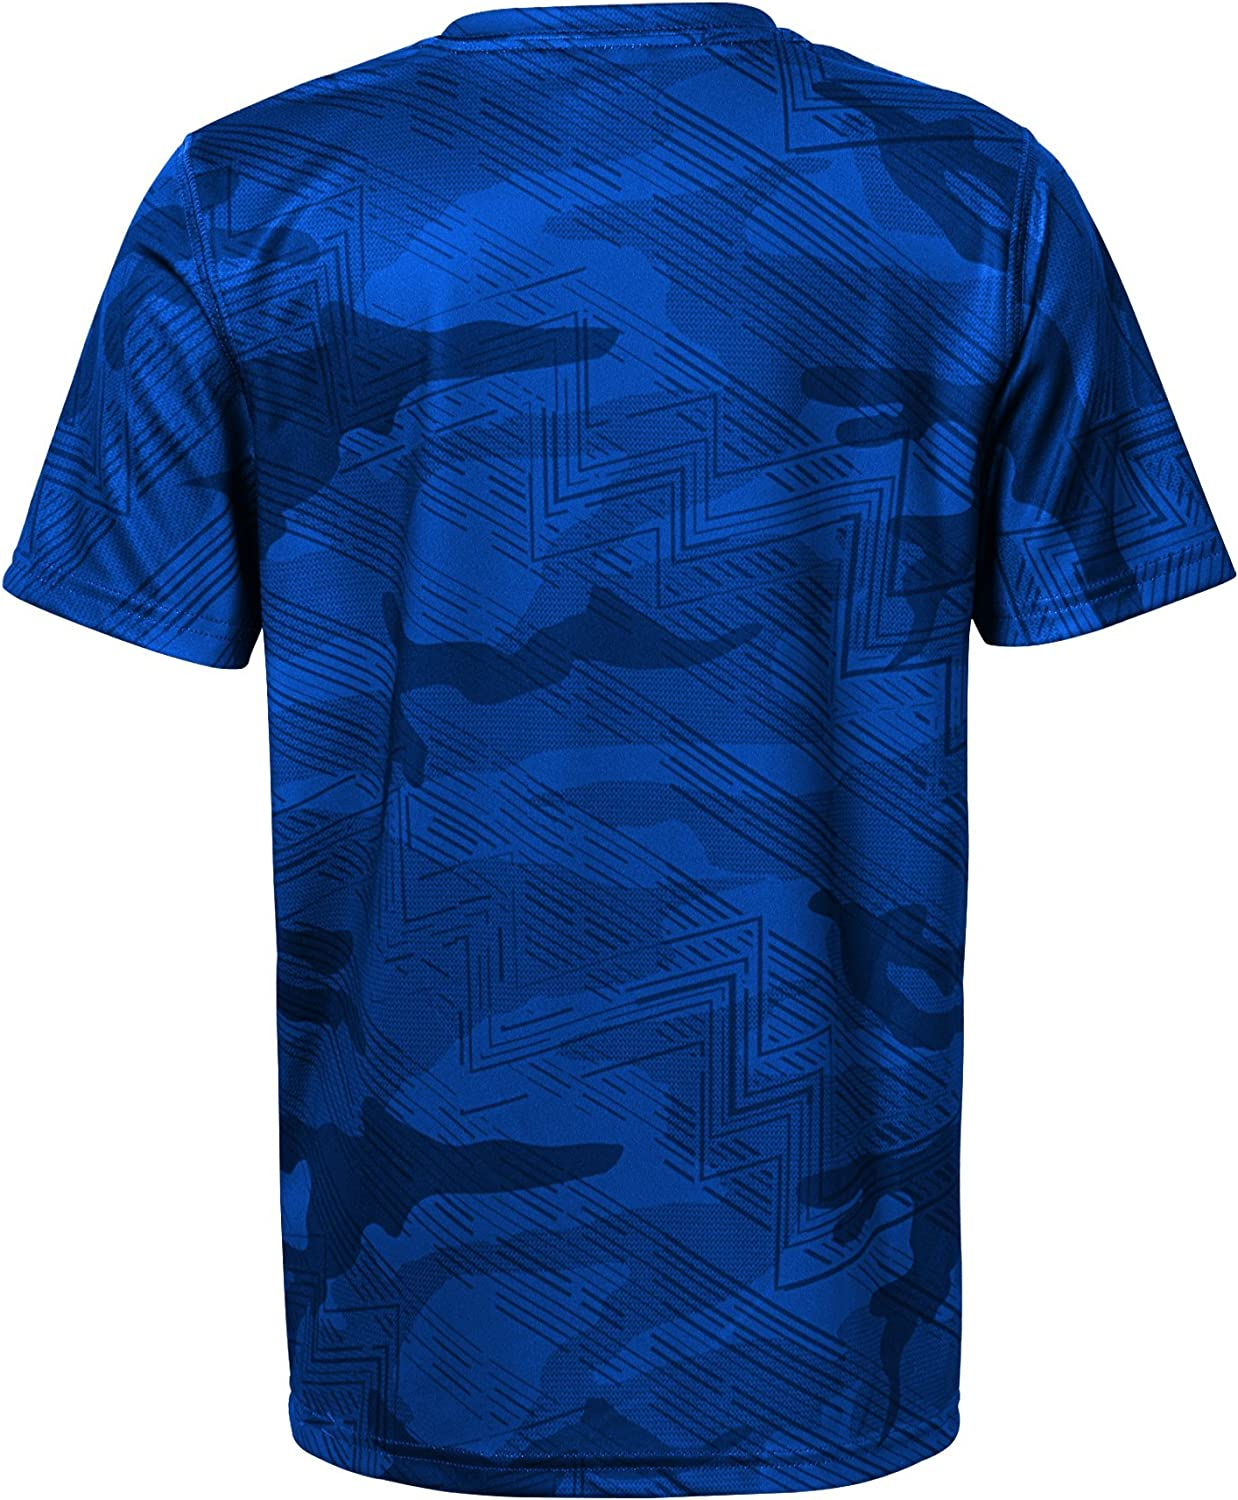 NBA by Outerstuff NBA Youth Boys Full Assault Sublimated Short Sleeve Tee